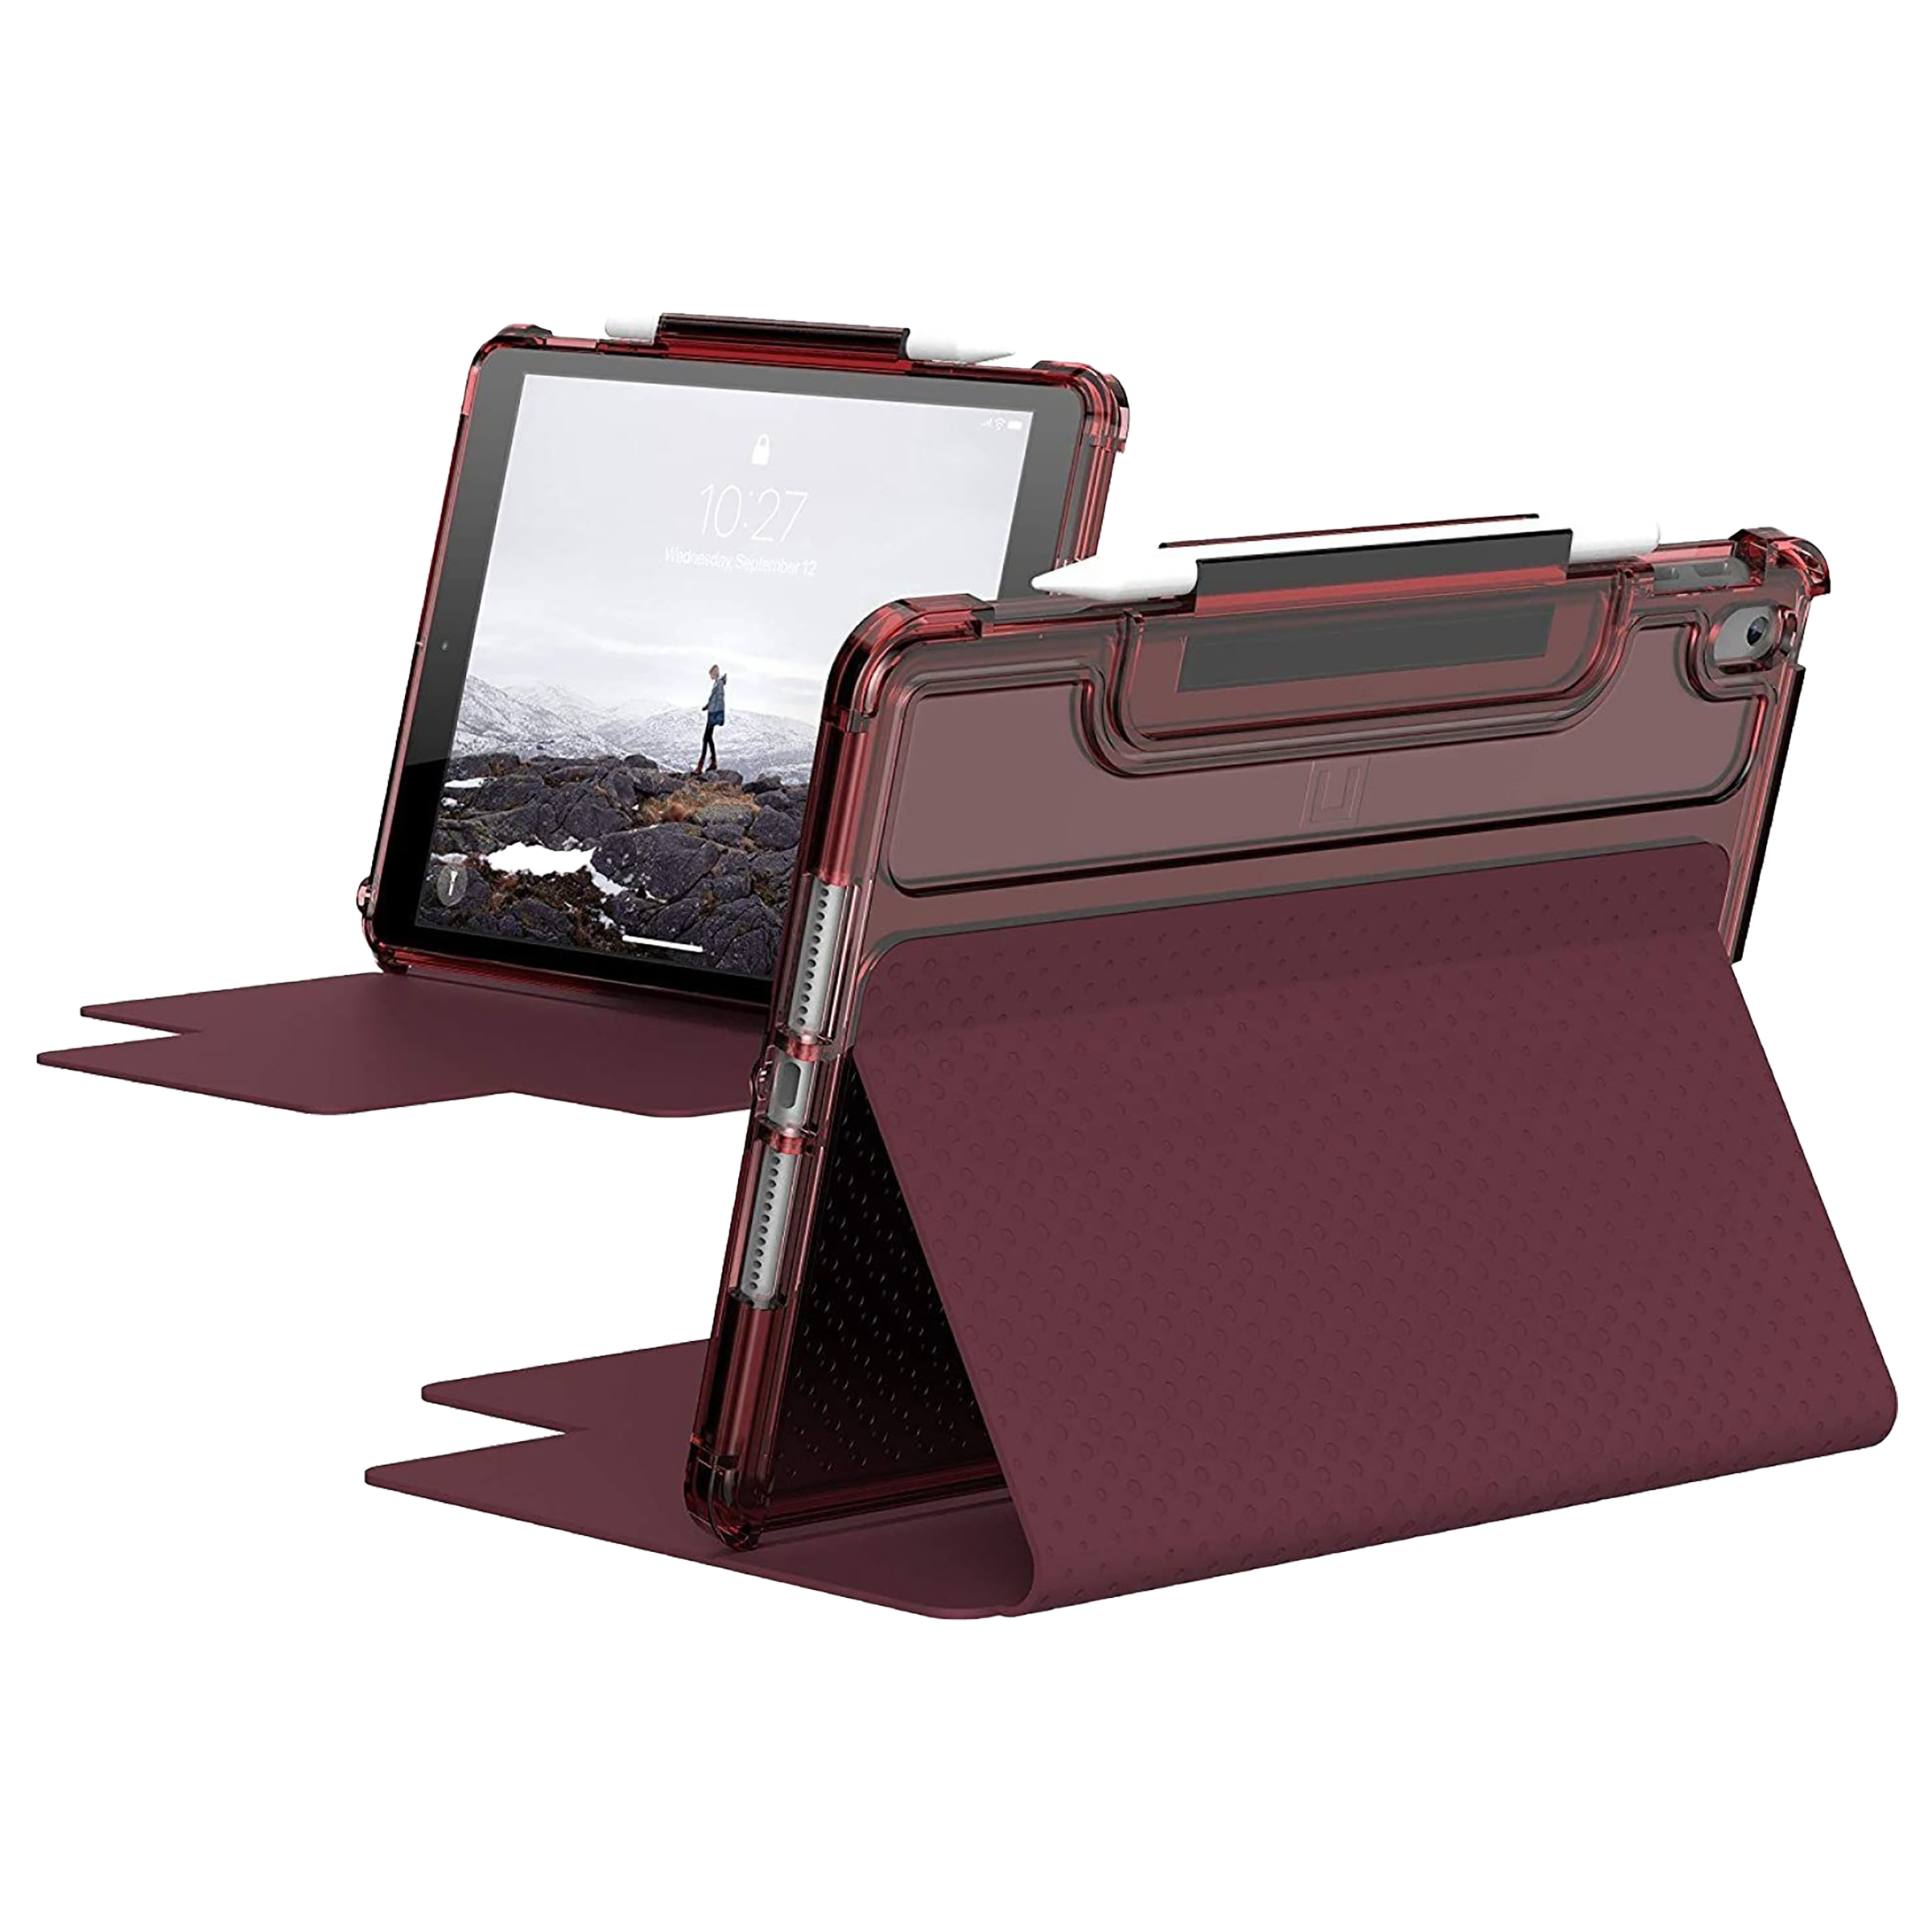 UAG Lucent Polycarbonate Flip Case with Stand For Apple iPad 10.2 Inch (Soft Impact Resistance, UGLU_IPD102_AG_RS, Aubergine/Dusty Rose)_1